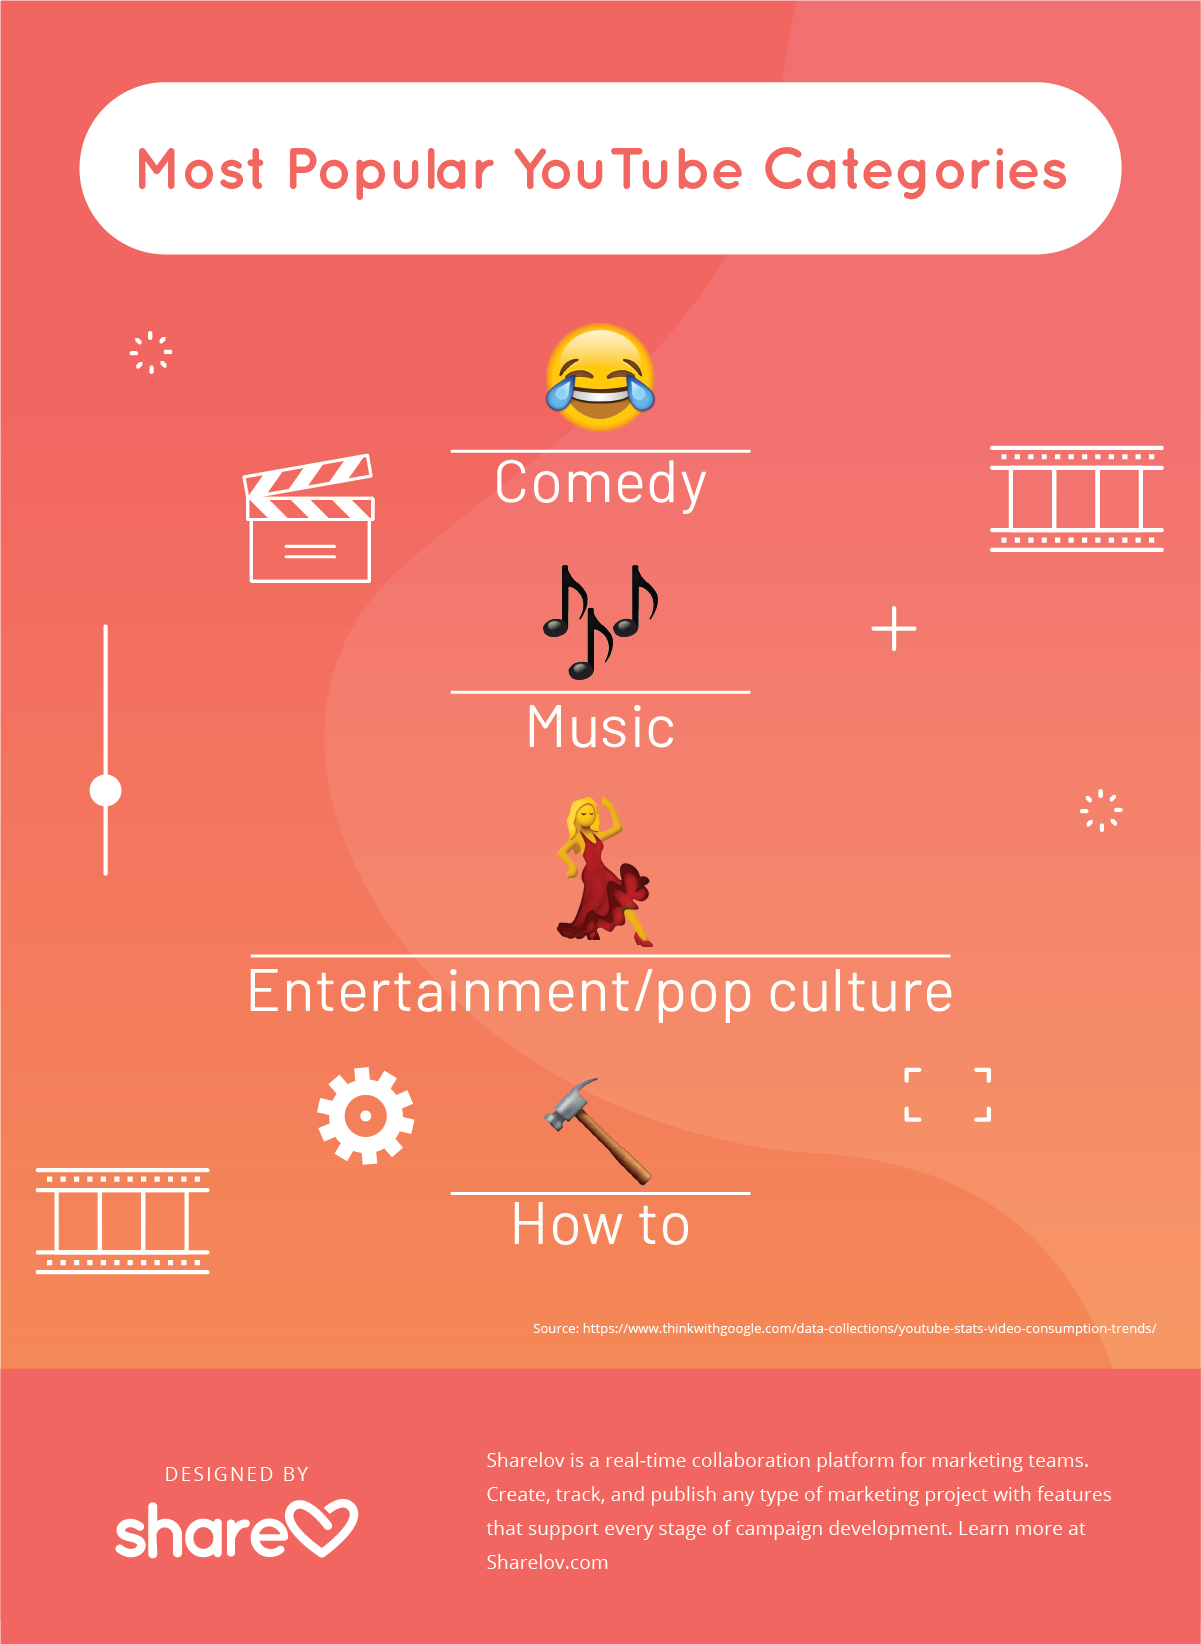 Most Popular YouTube Categories - Infographic